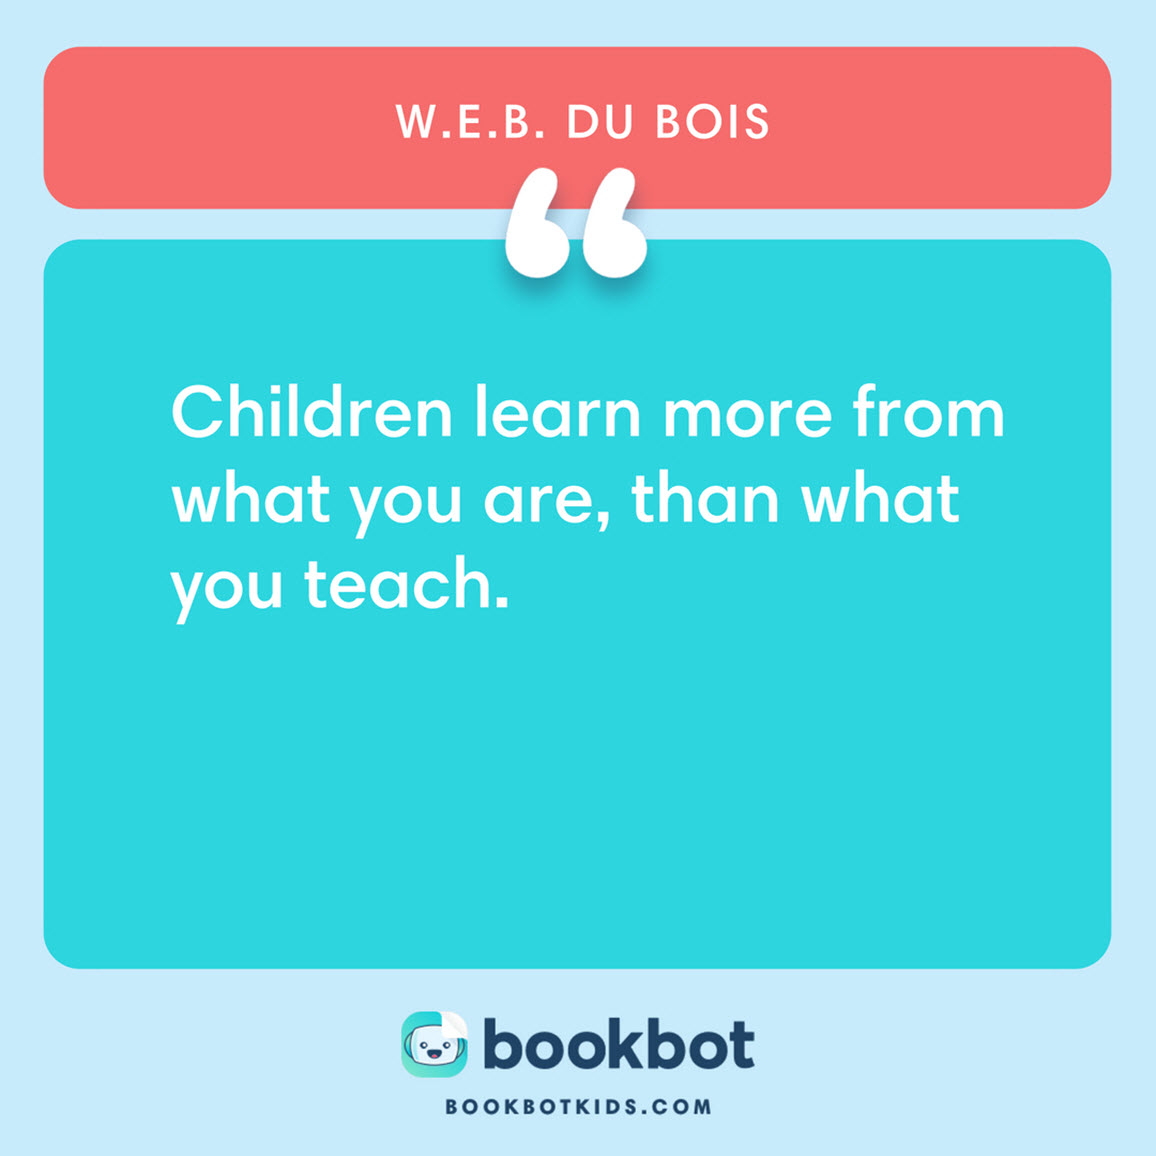 Children learn more from what you are, than what you teach. – W.E.B. Du Bois